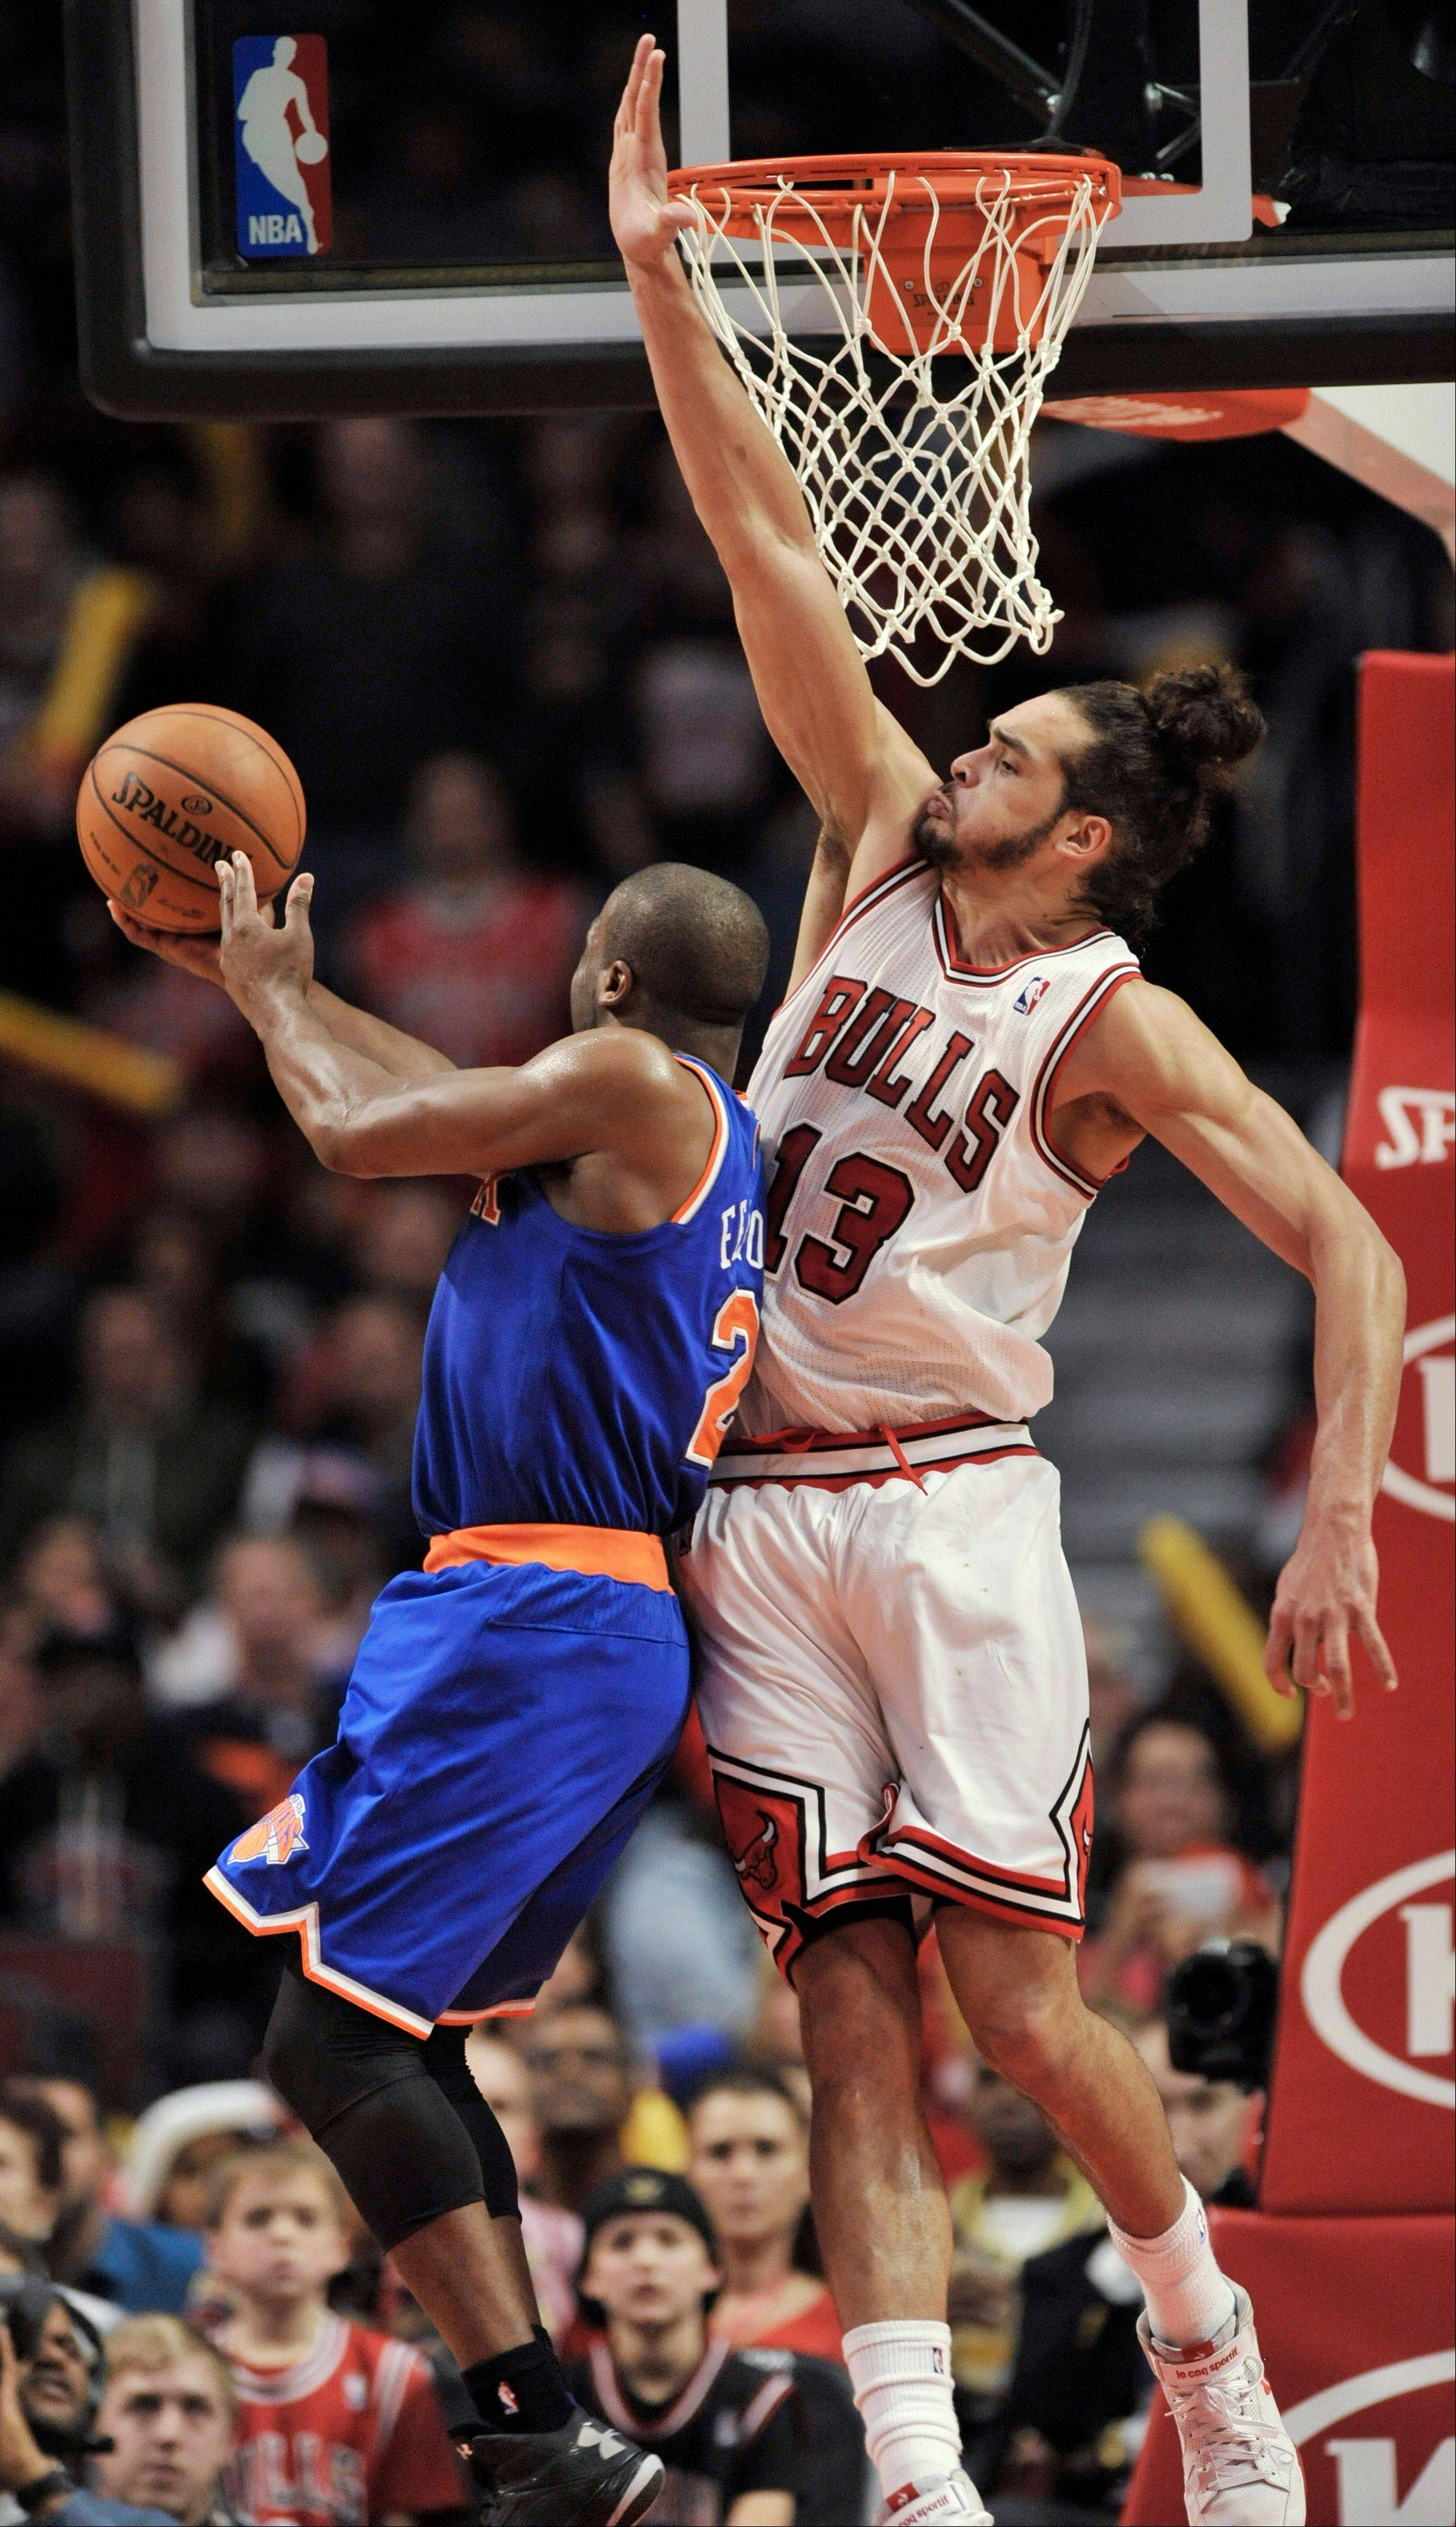 New York Knicks' Raymond Felton goes up for a shot against Chicago Bulls' Joakim Noah during the fourth quarter in Chicago Saturday. The Bulls won 93-85.